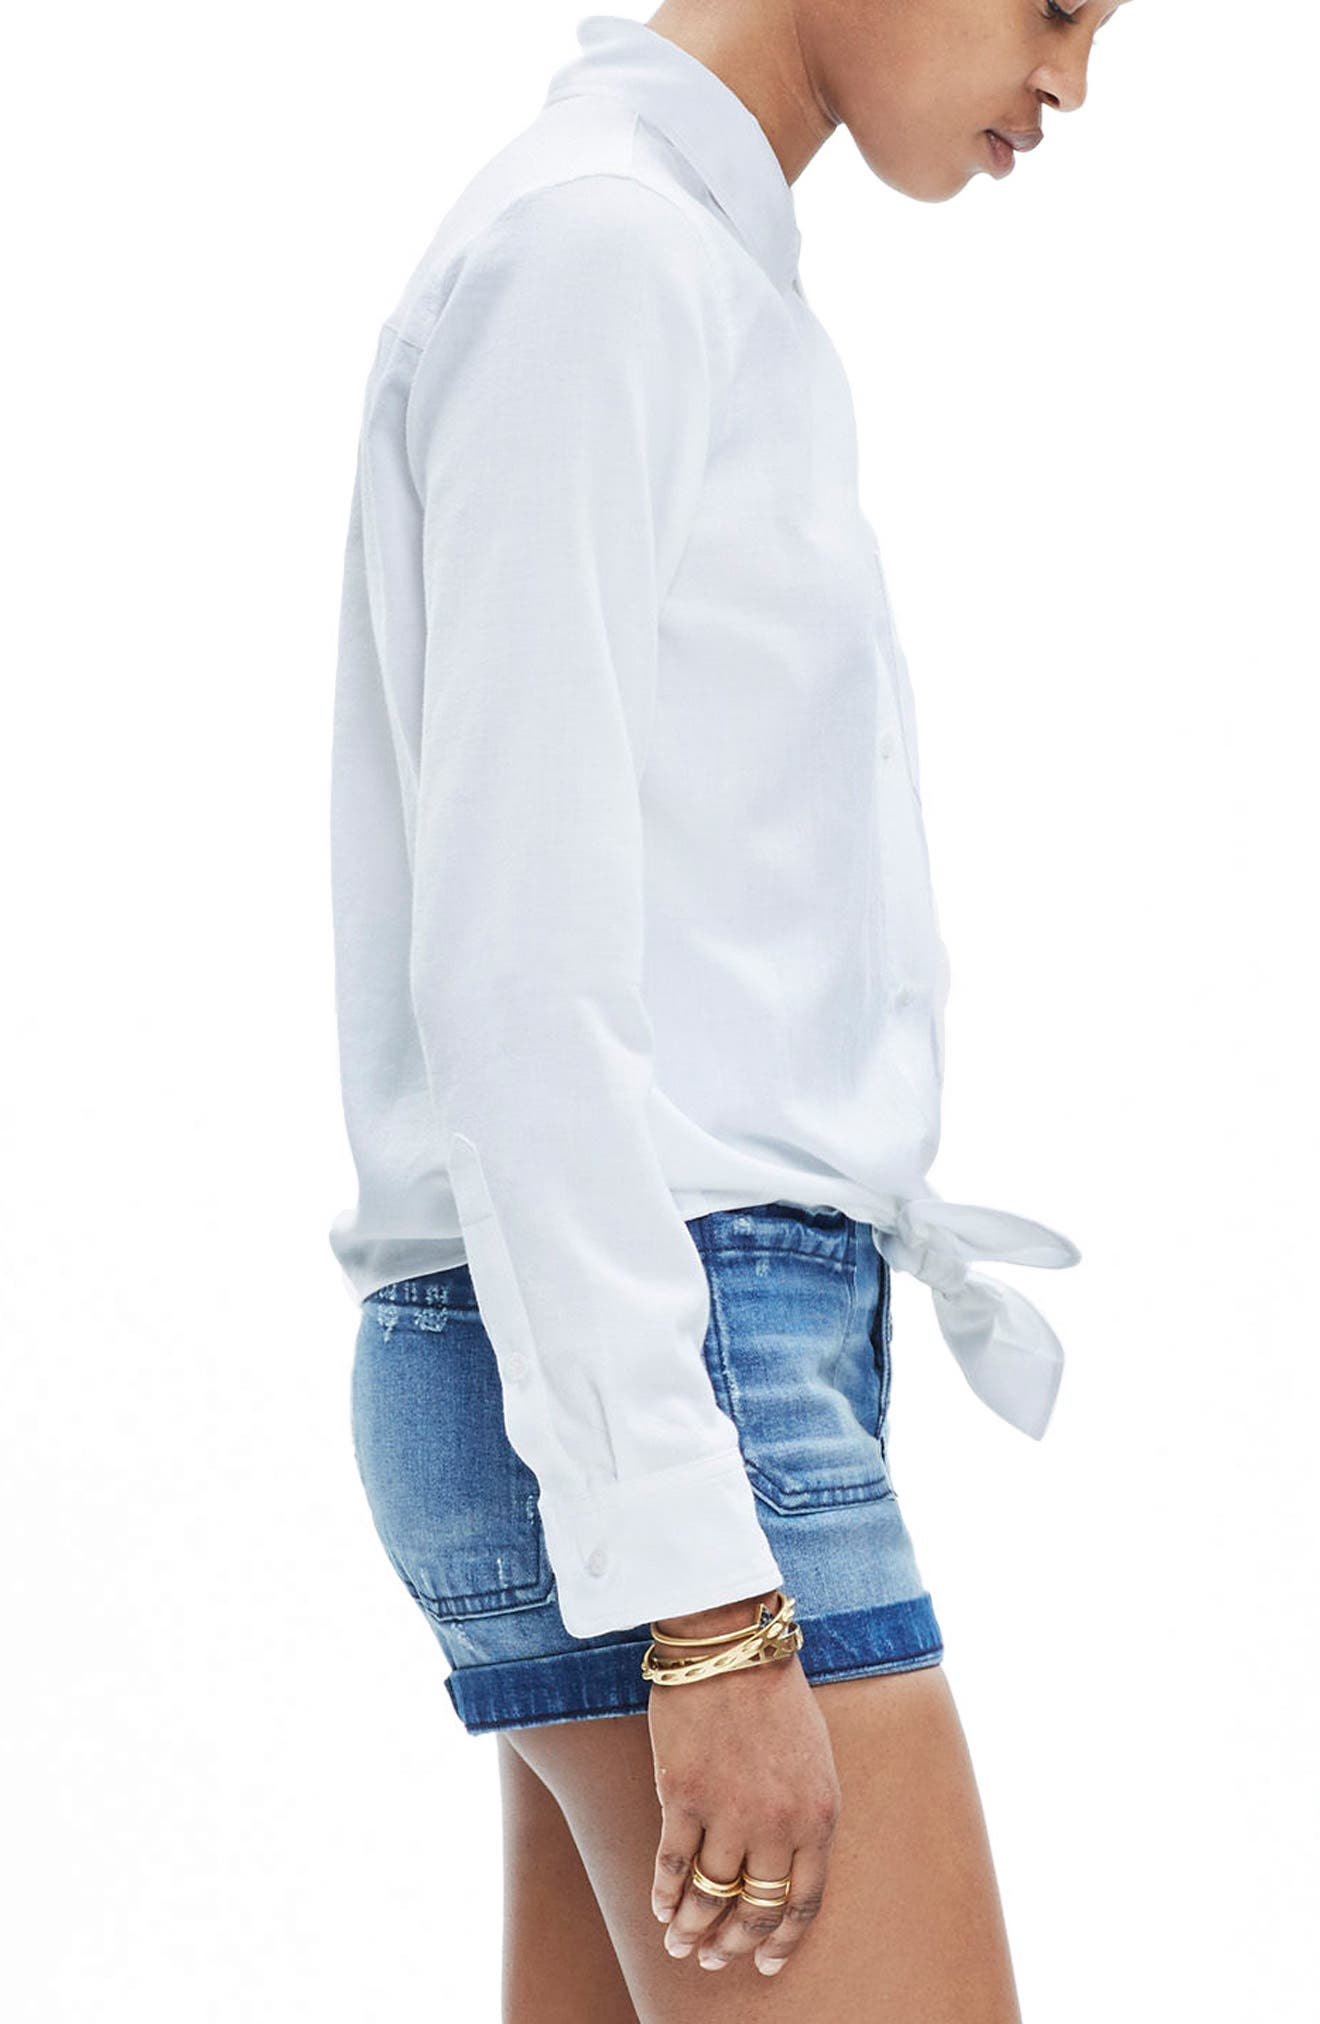 MADEWELL, Tie Front Shirt, Alternate thumbnail 3, color, EYELET WHITE